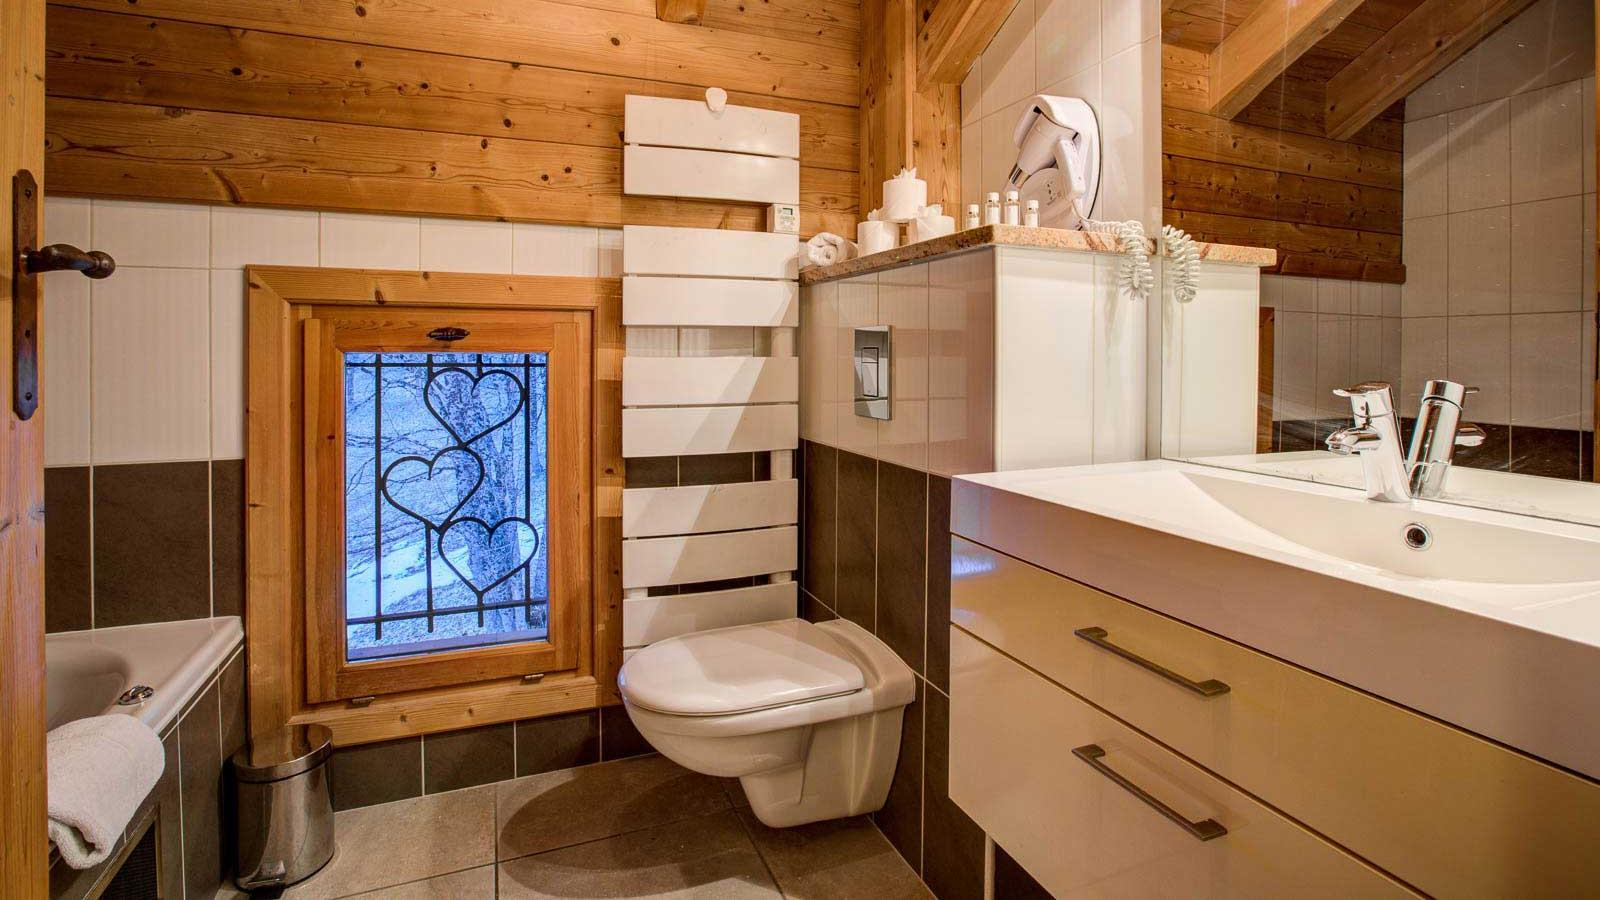 Chalet Laetitia bathroom